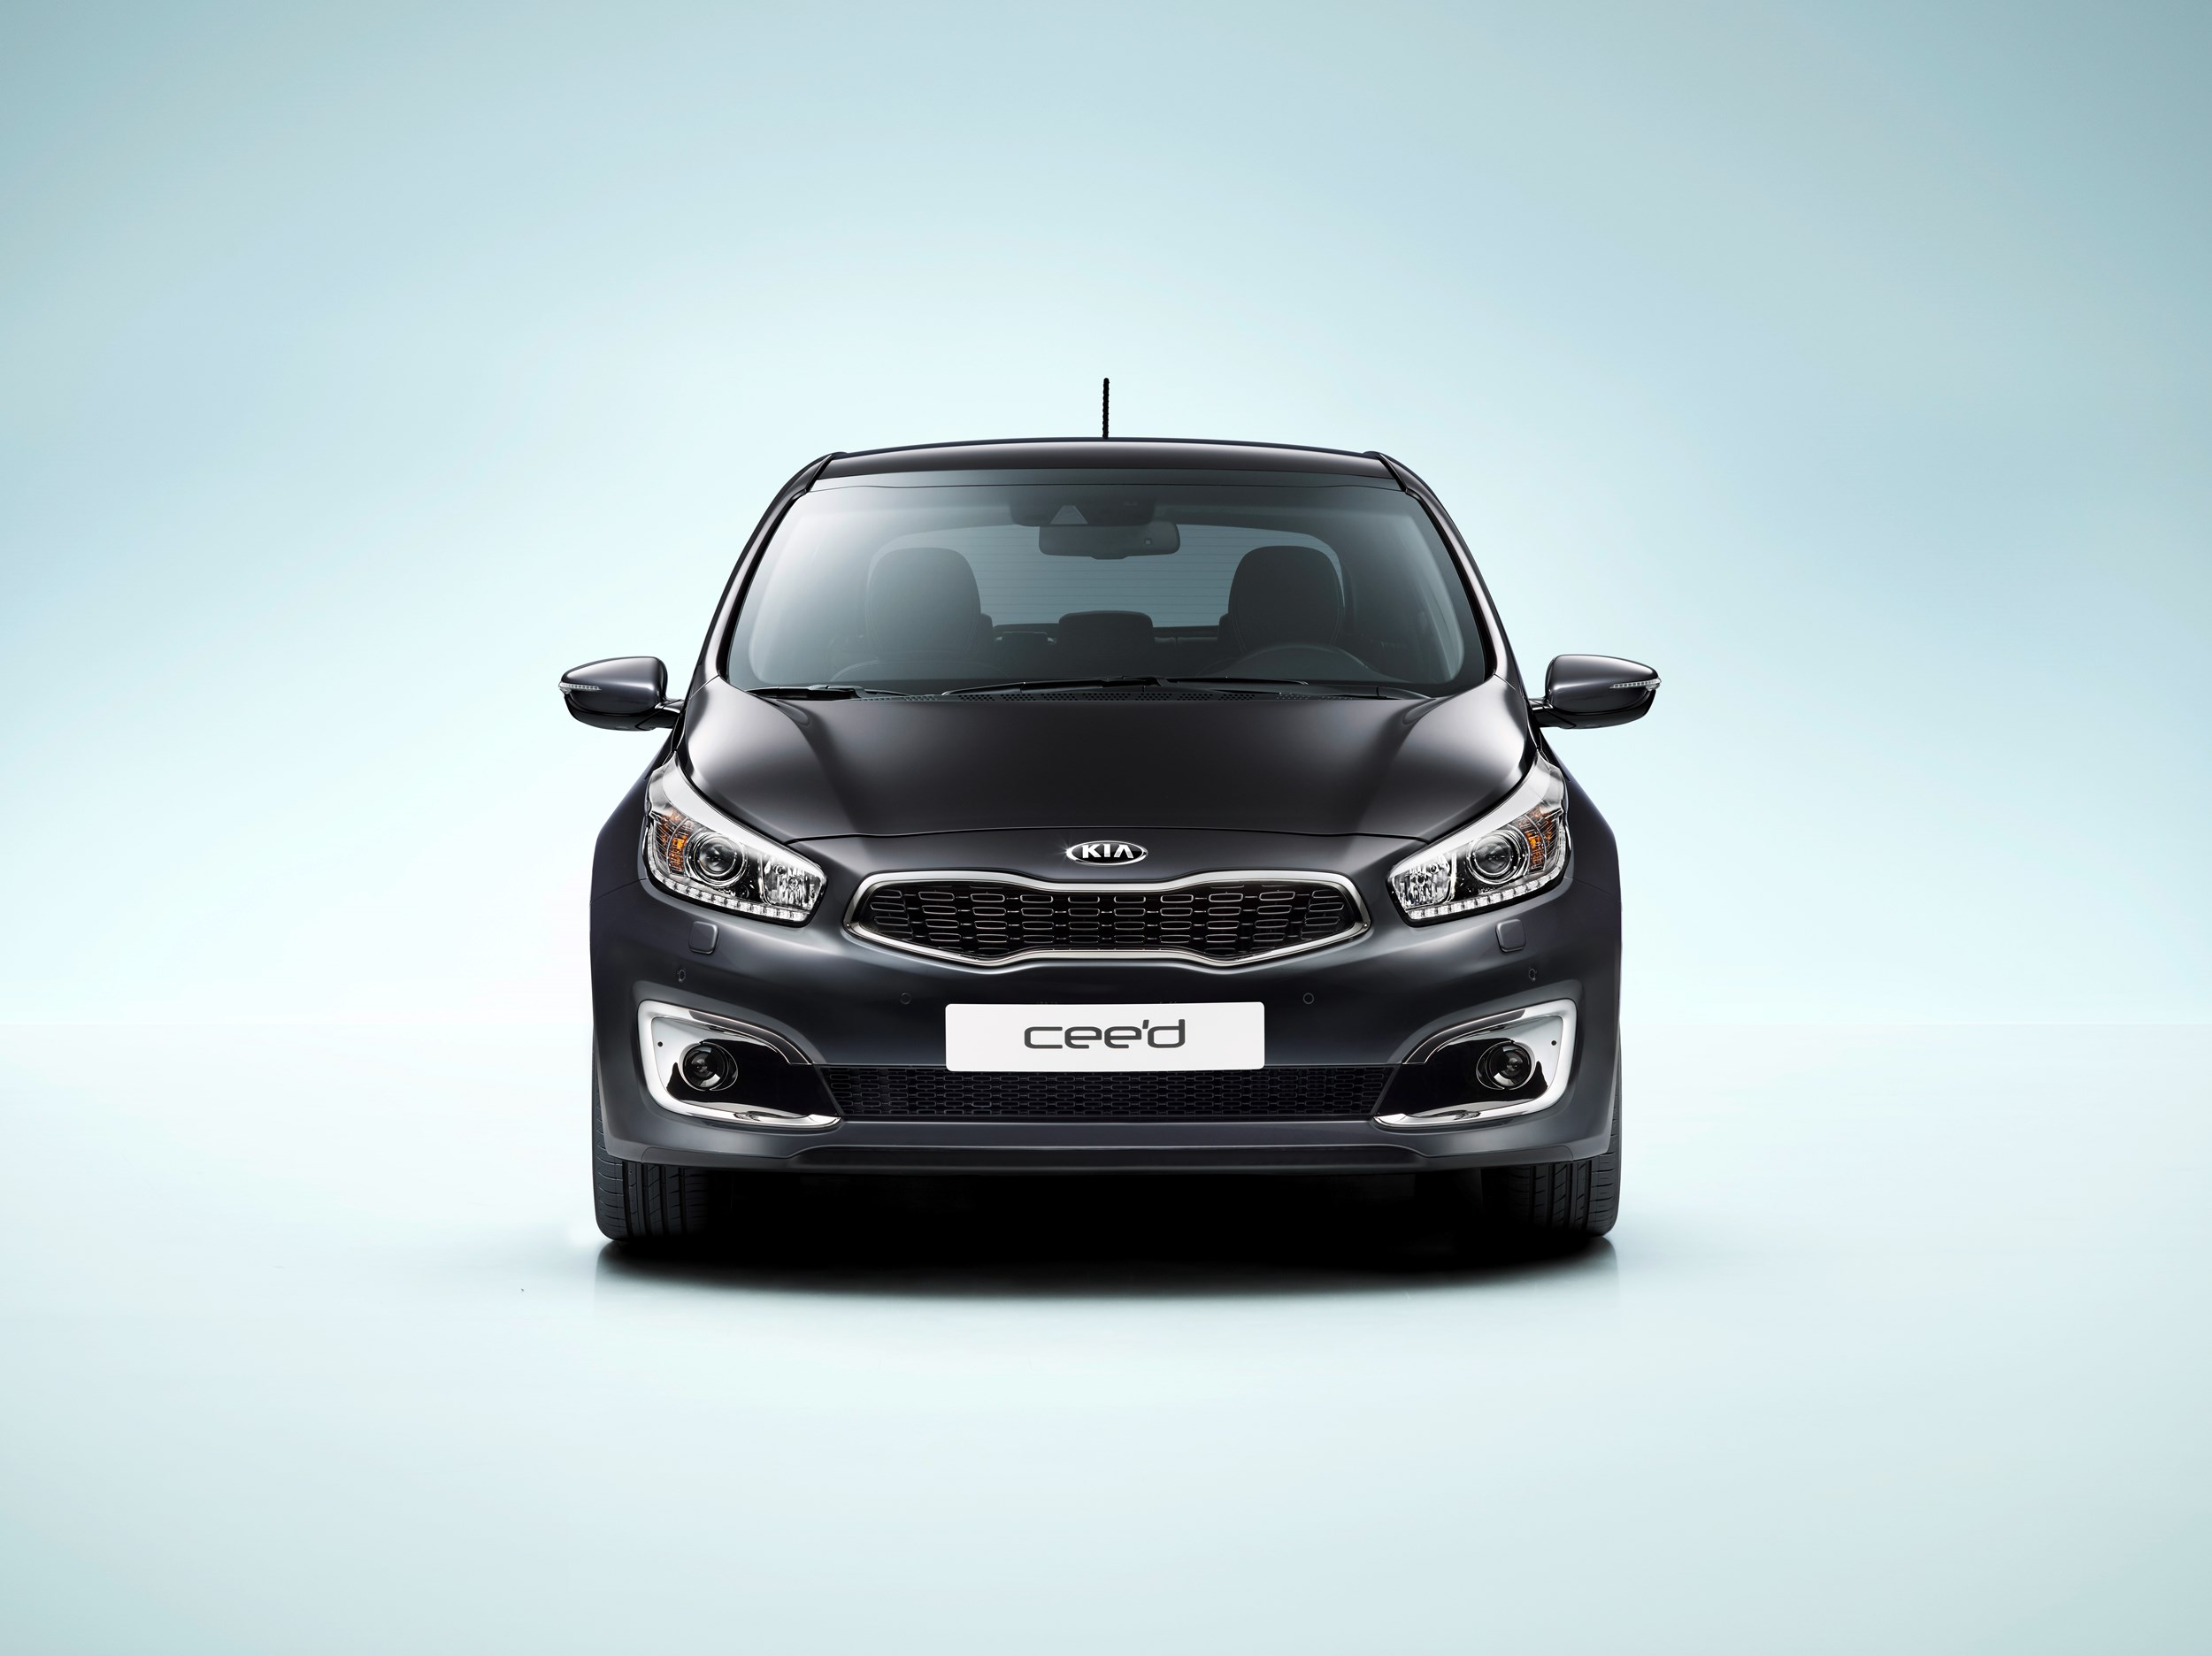 kia c 39 eed c 39 eed sw and pro cee 39 d 2016 pictures car galleries